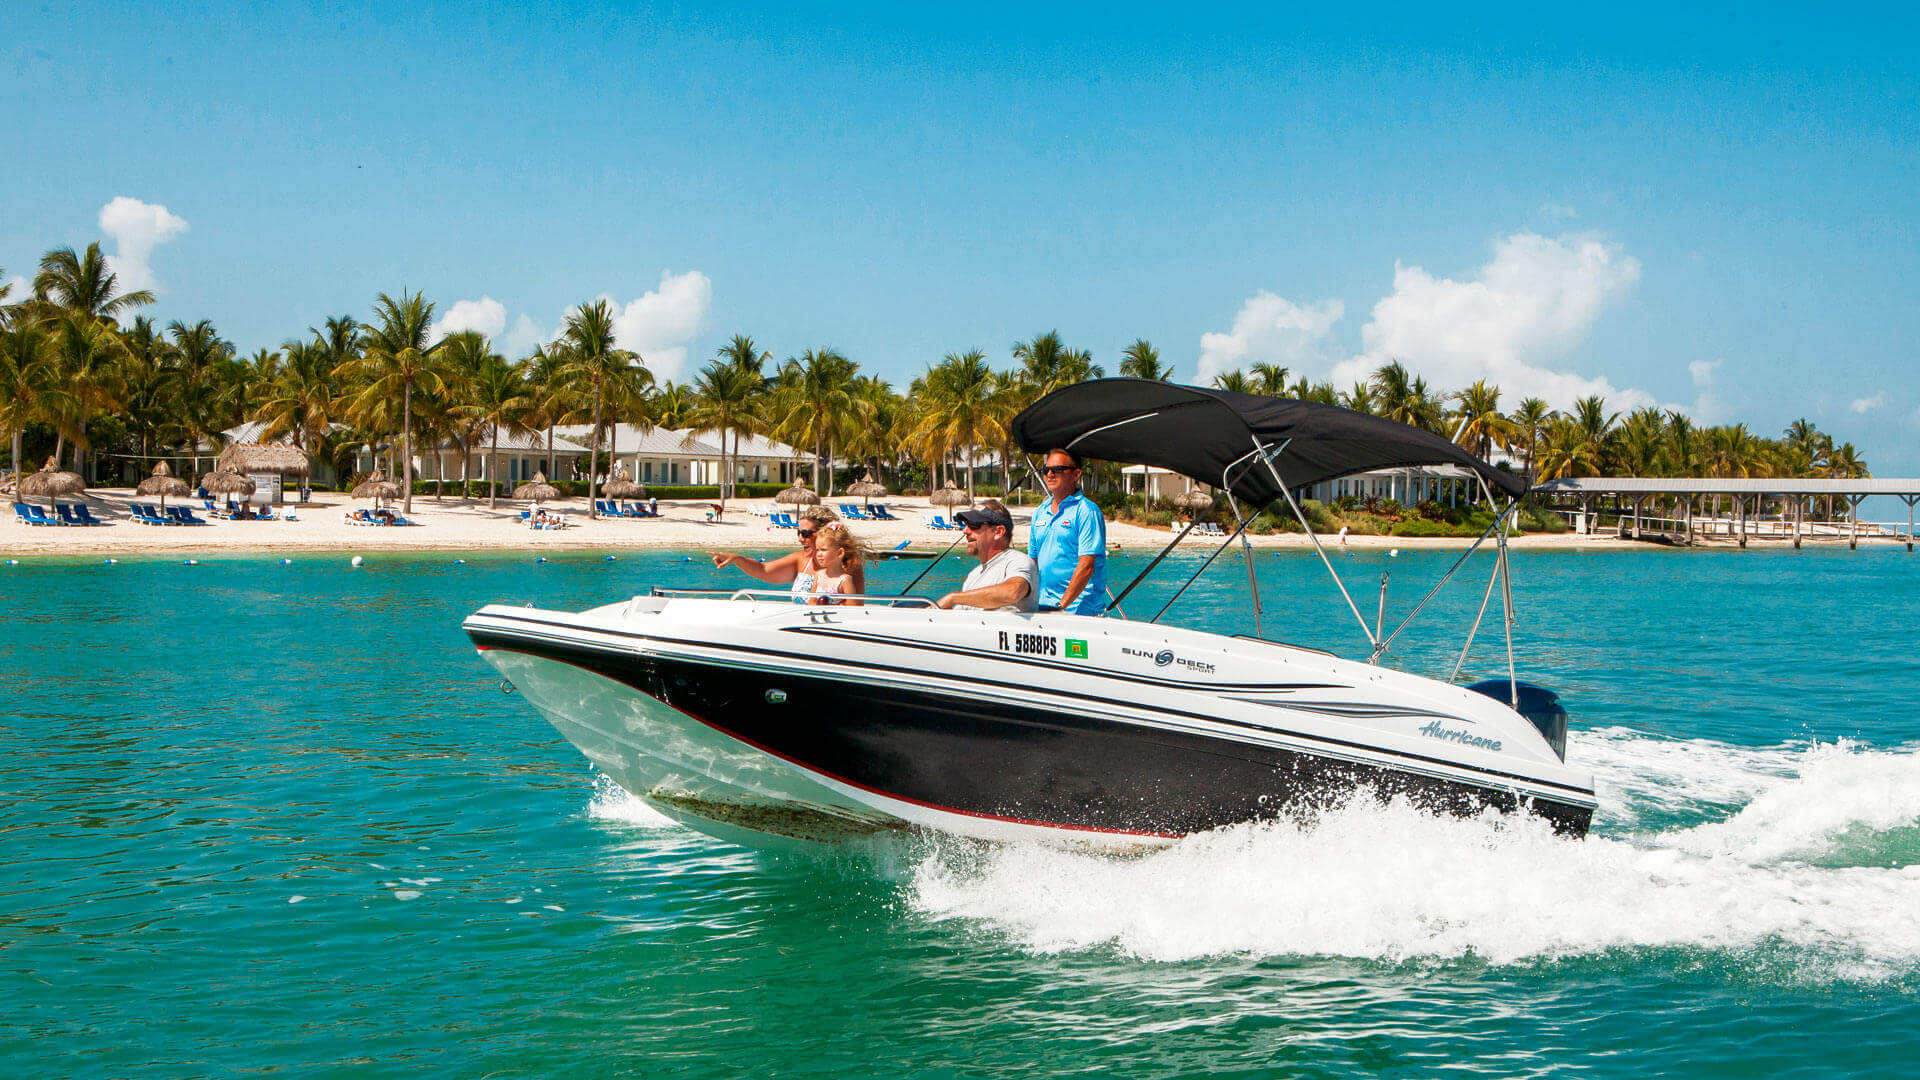 Image of family on a Key West boat rental